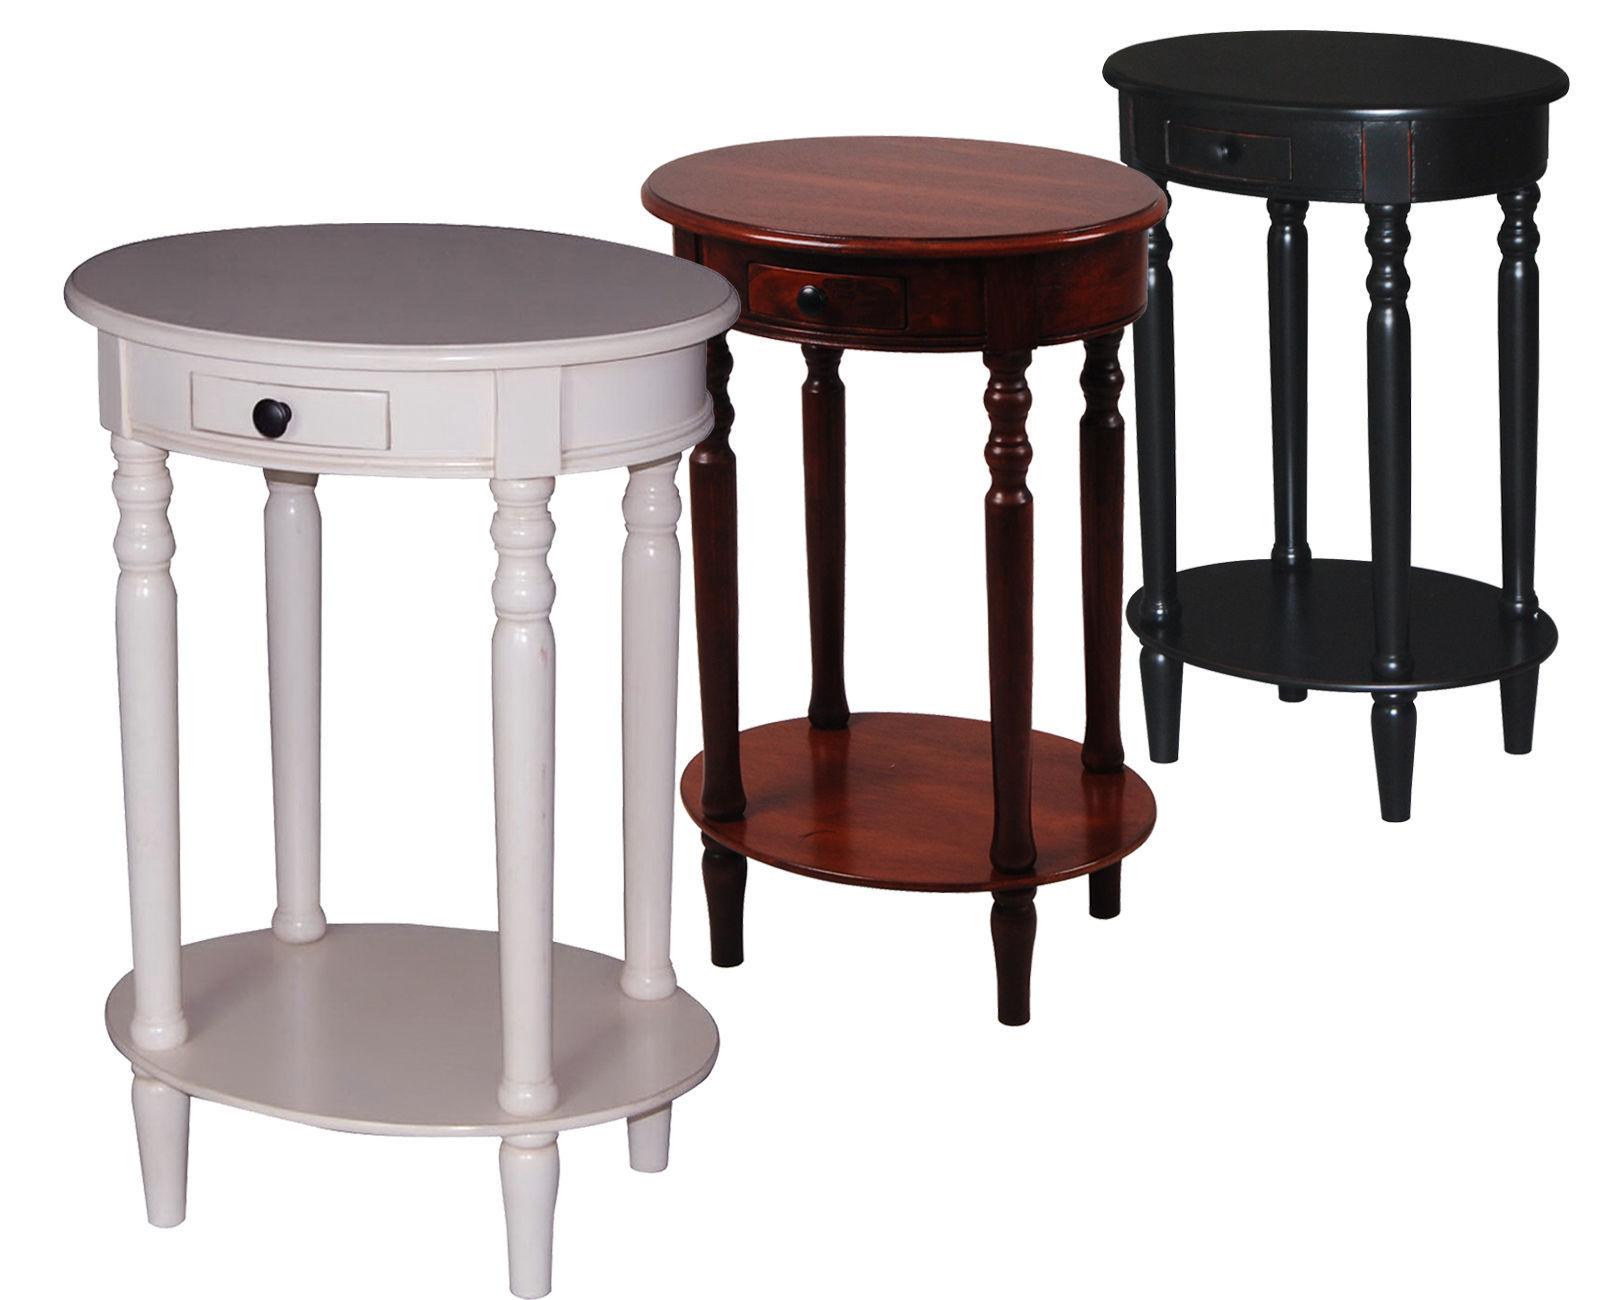 urbanest solid wood oval accent side end table with a drawer and bottom shelf tables. Black Bedroom Furniture Sets. Home Design Ideas